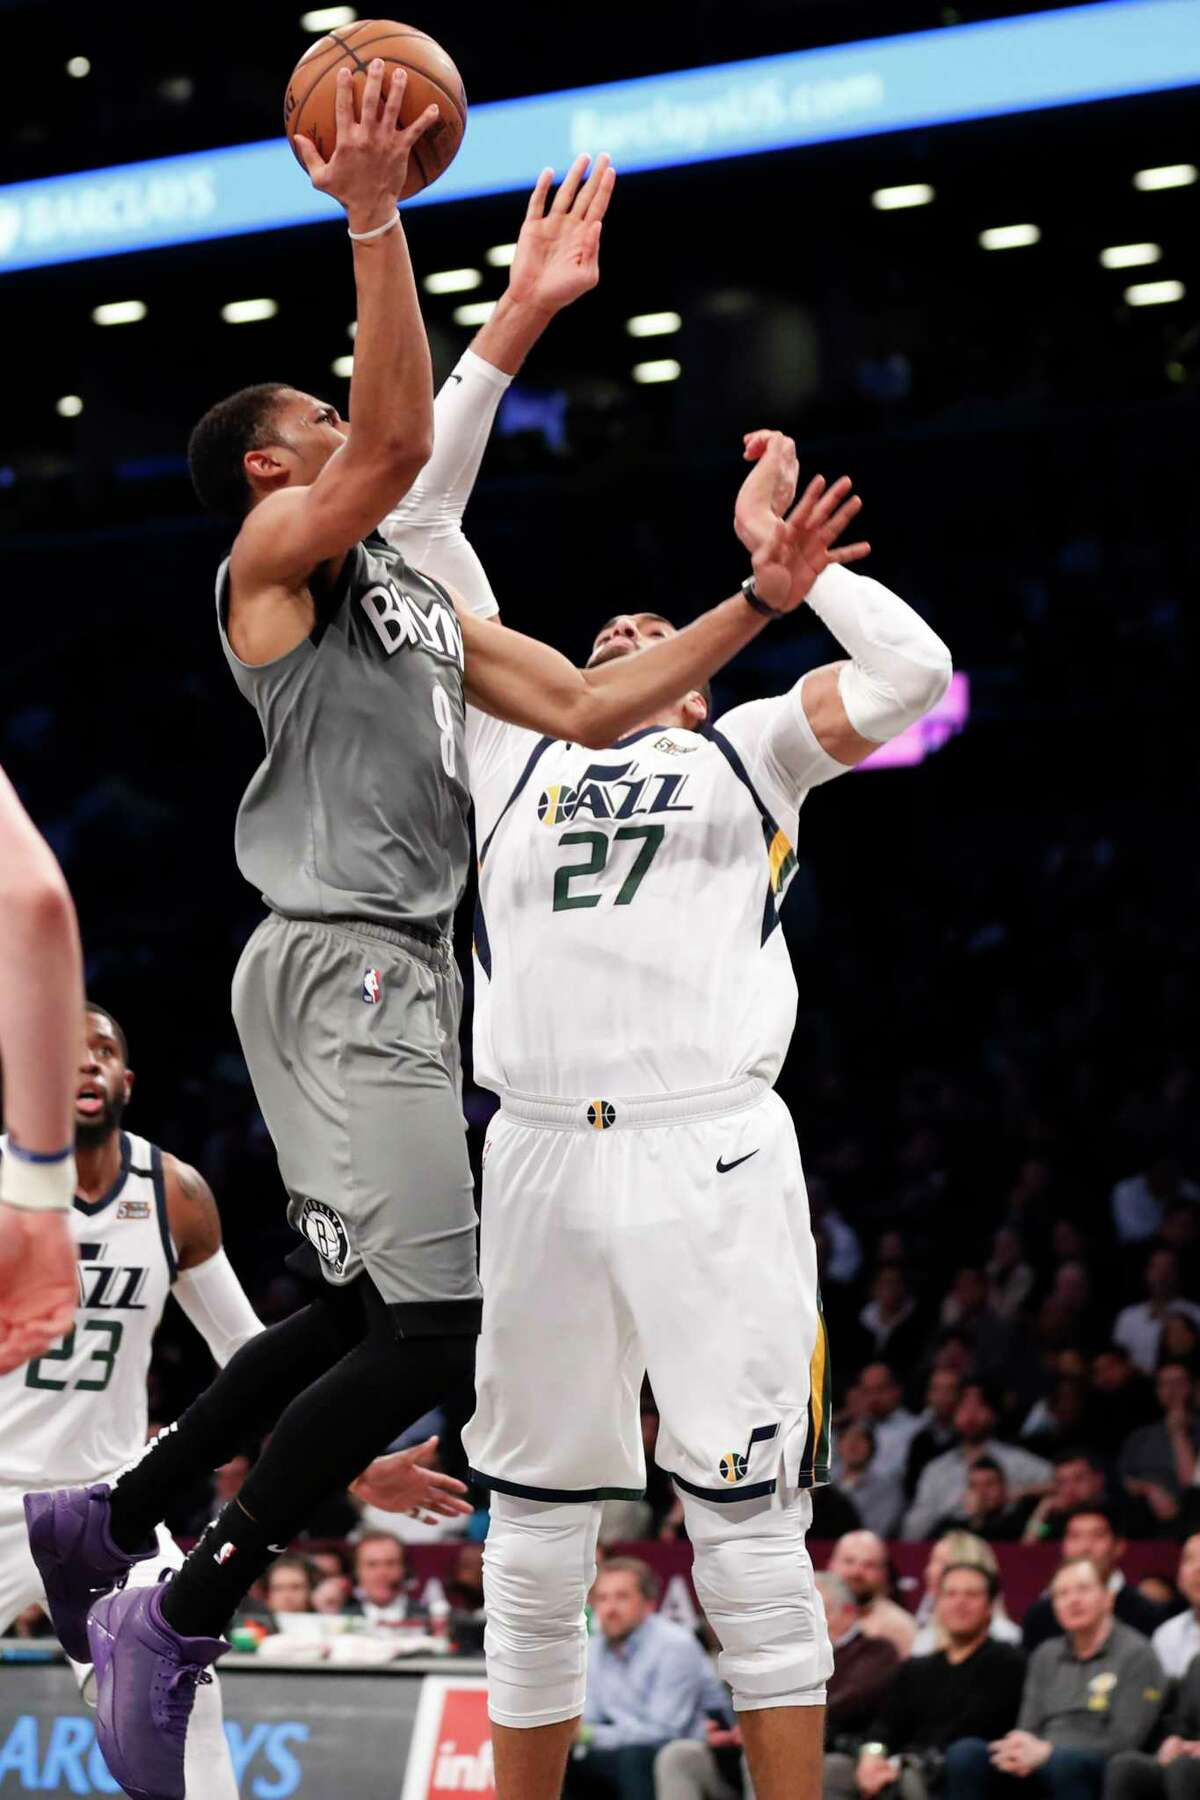 Utah Jazz center Rudy Gobert (27) defends as Brooklyn Nets guard Spencer Dinwiddie (8) shoots during the second quarter of an NBA basketball game Tuesday, Jan. 14, 2020, in New York. (AP Photo/Kathy Willens)